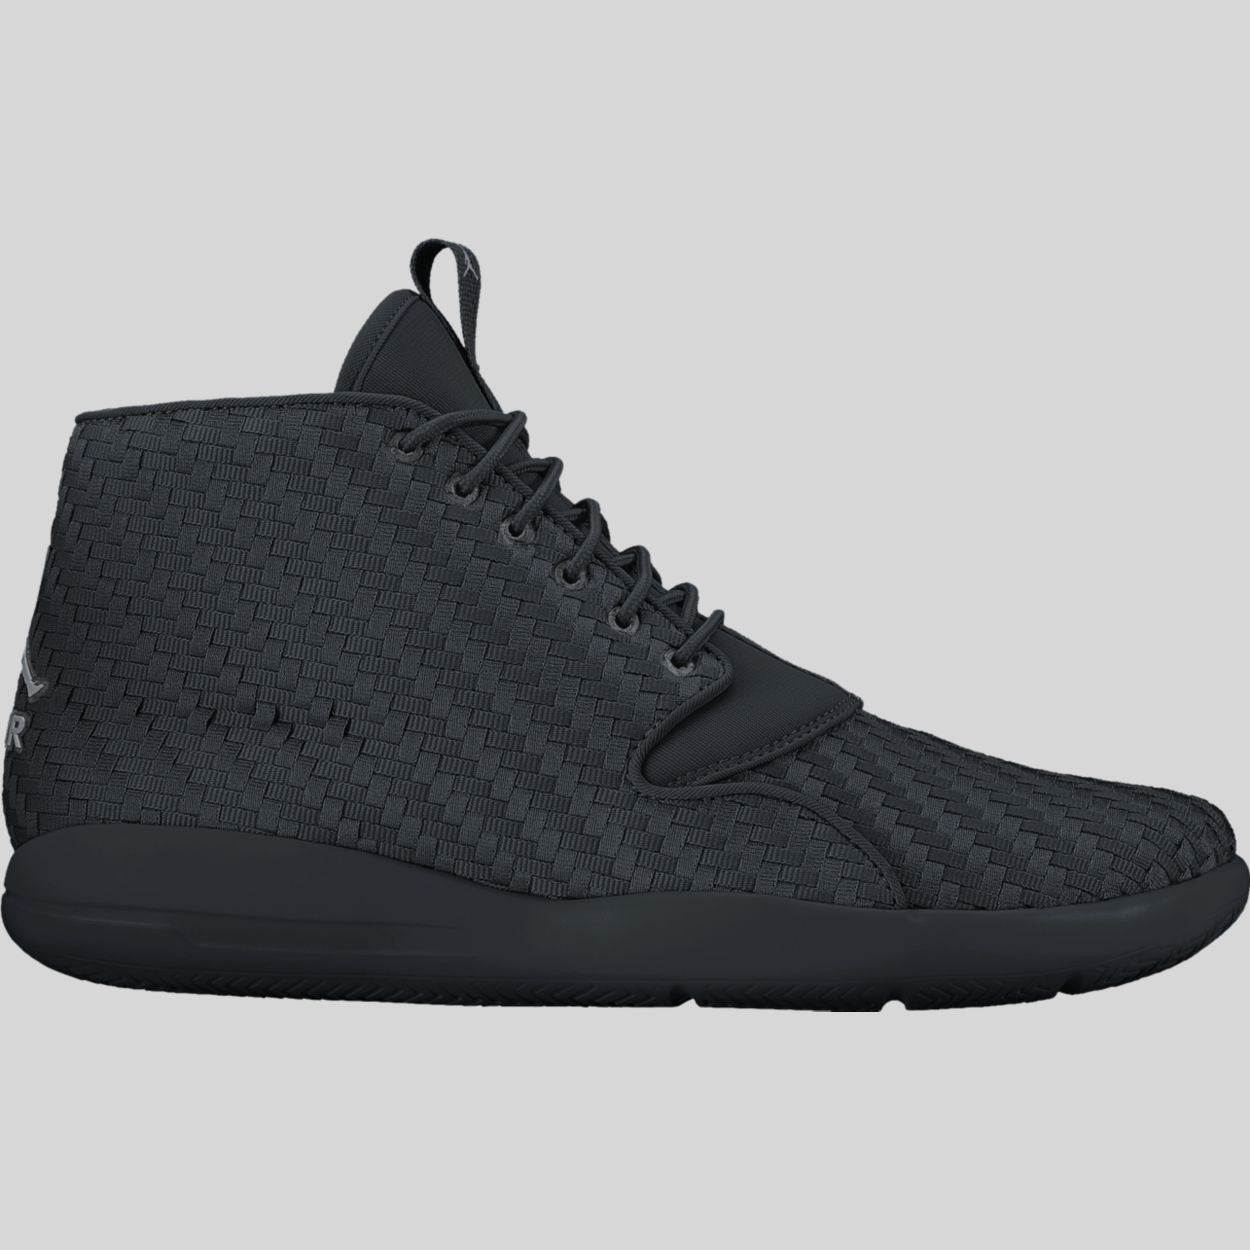 315ad466acc8eb Nike Jordan Eclipse Chukka Black Cool Grey (881453-004)